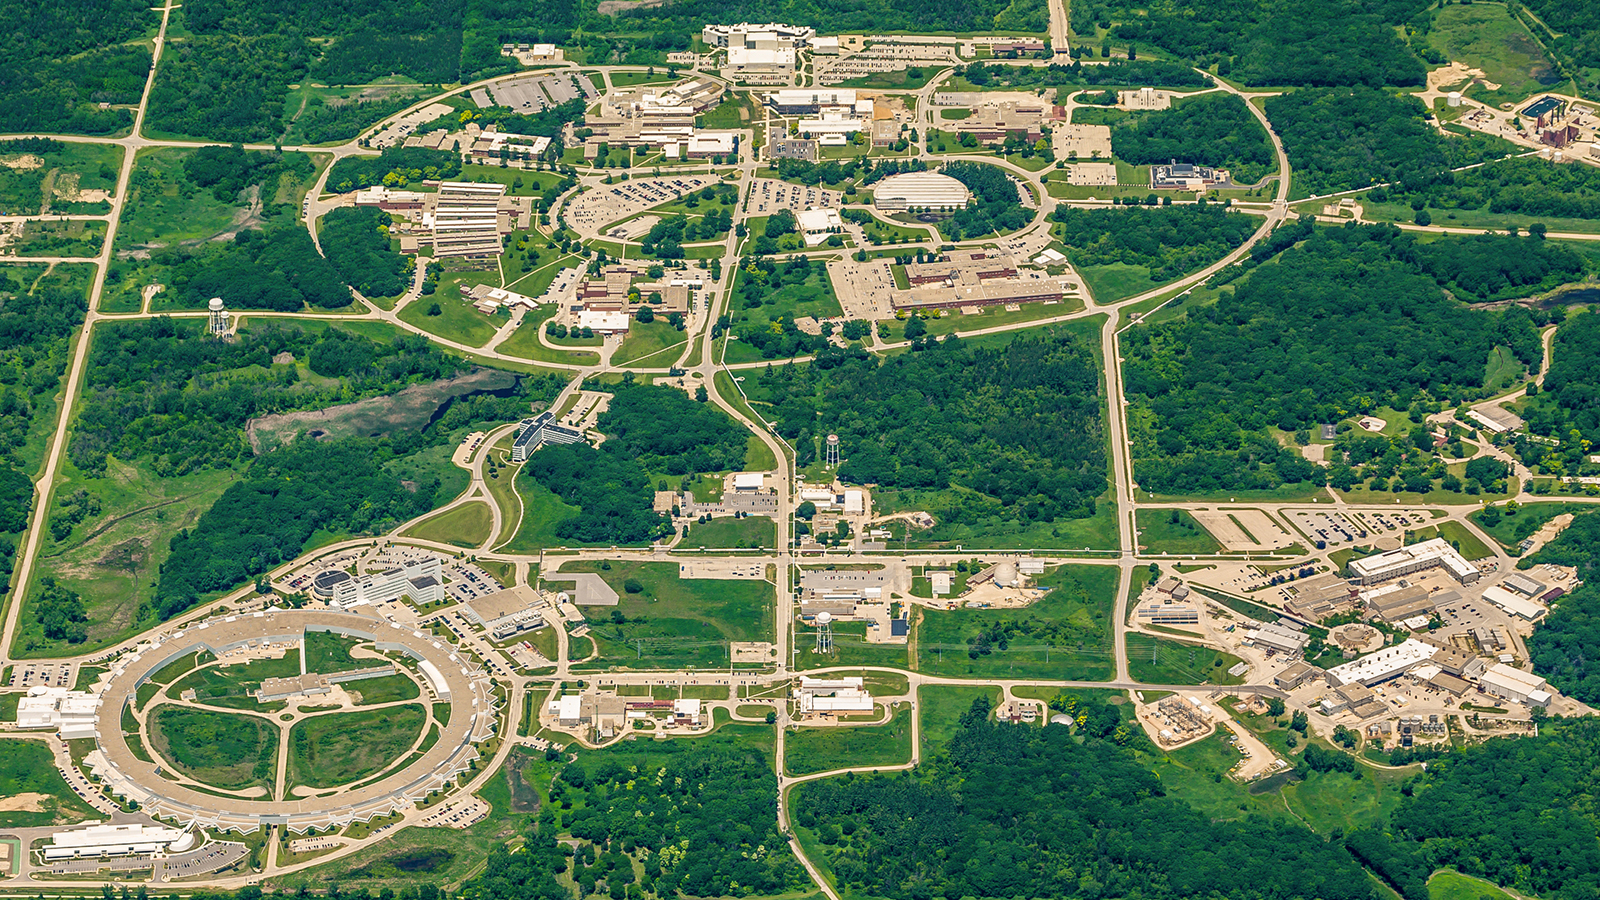 Aerial view of the Argonne National Laboratory campus